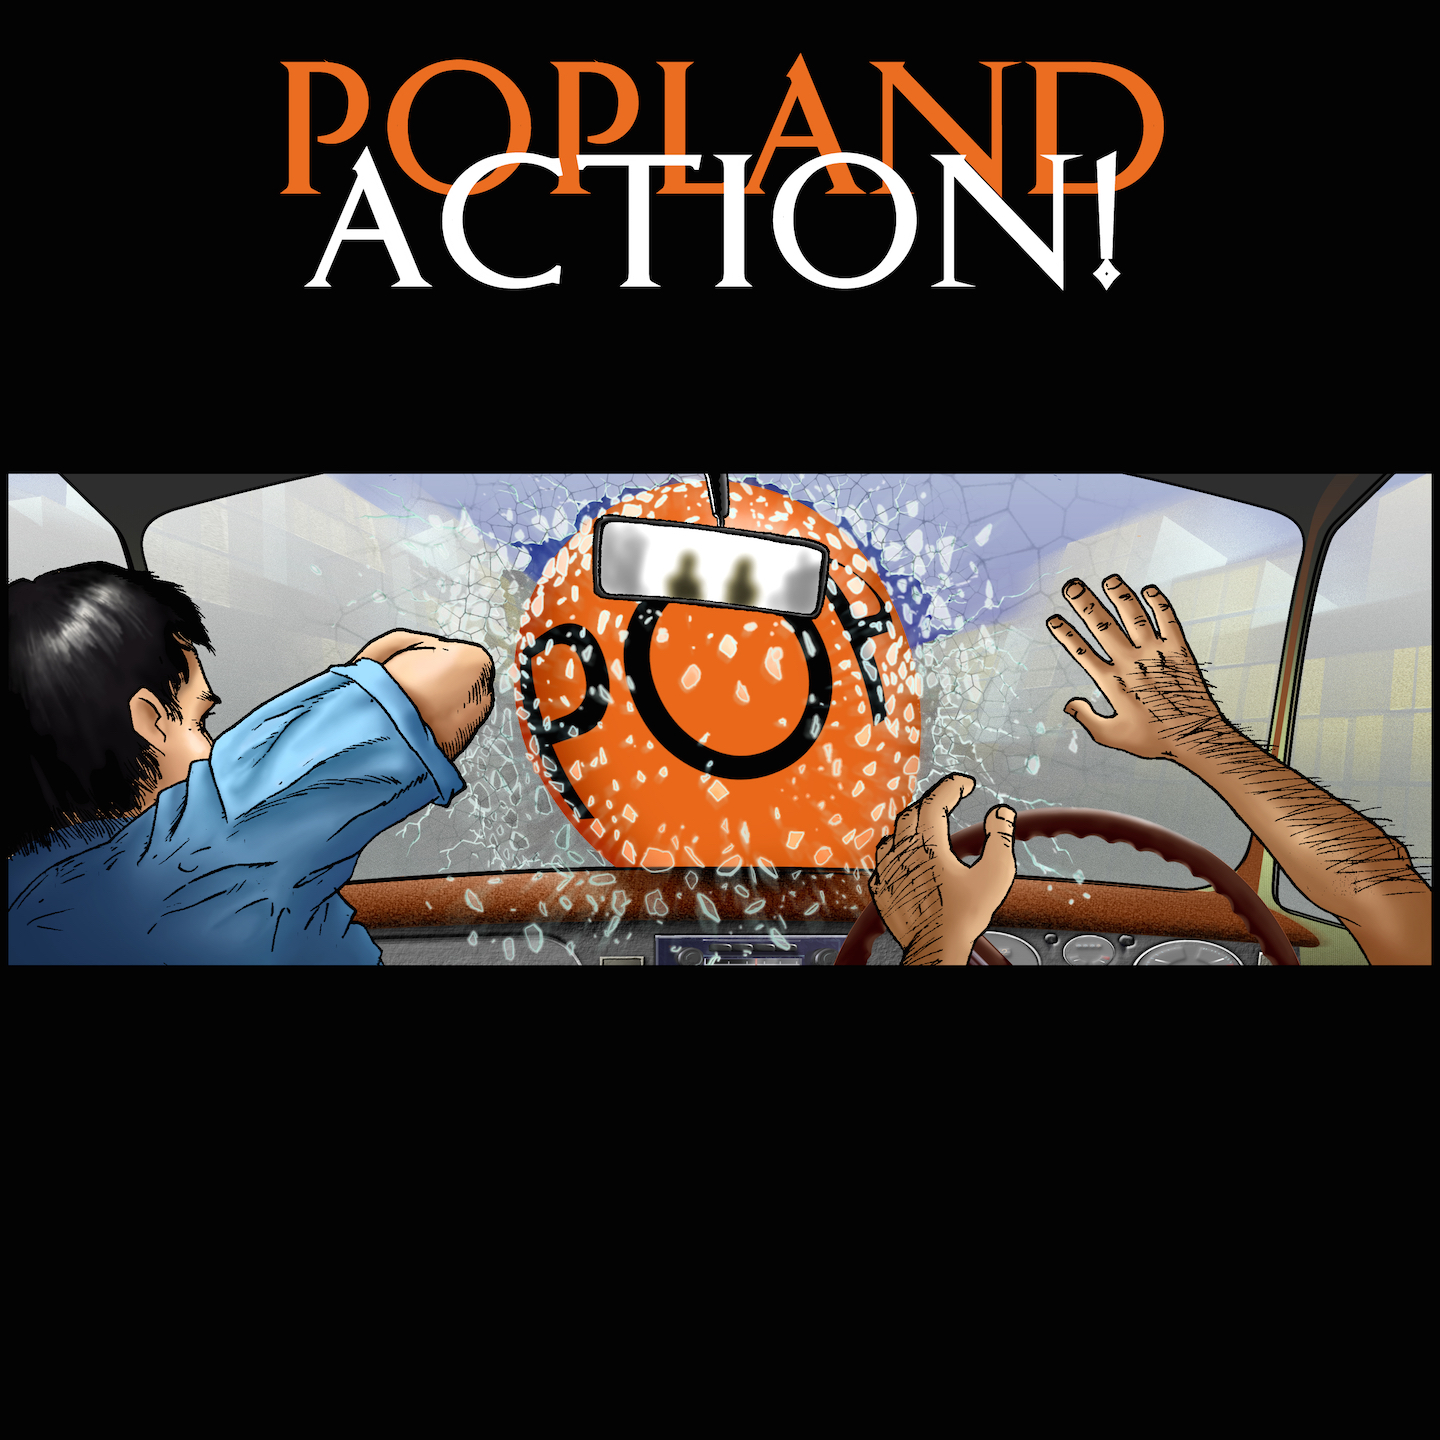 Album cover of Action! (2002) by Popland